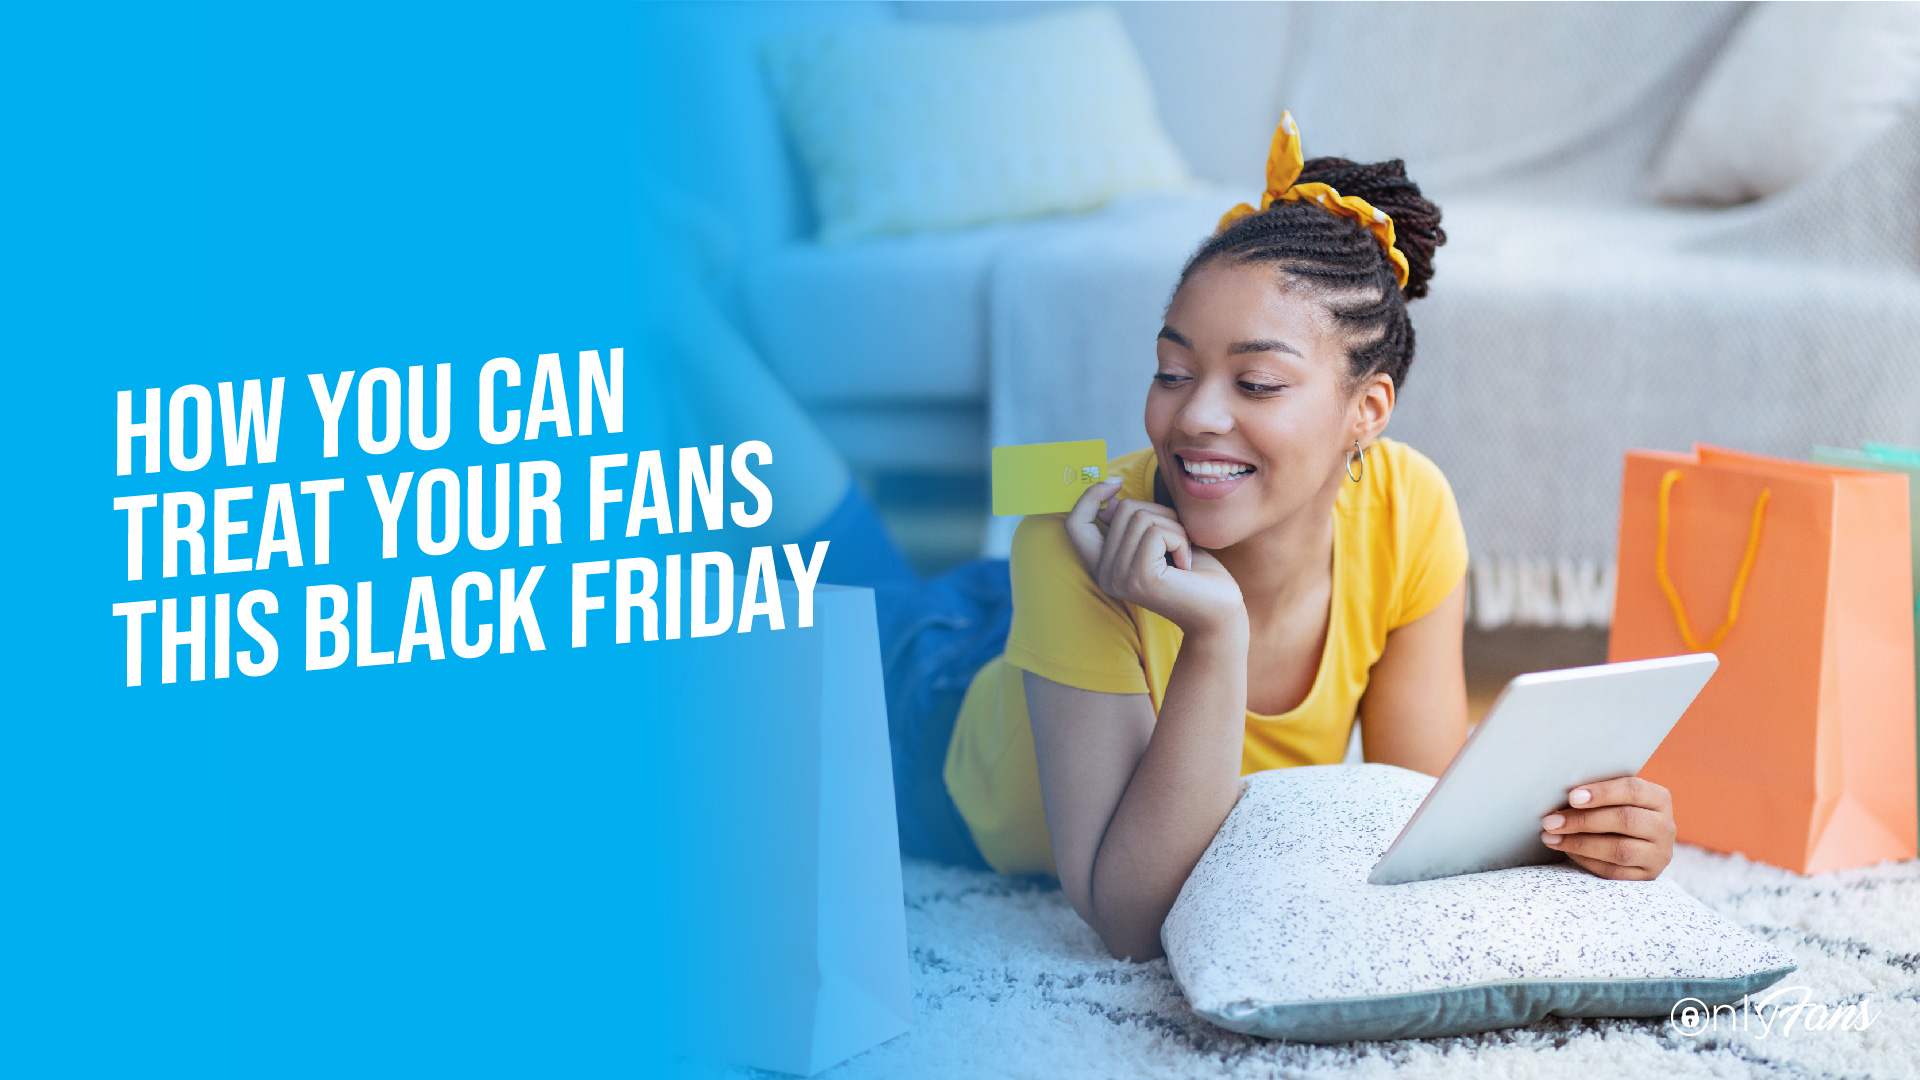 how you can treat your fans this Black Friday